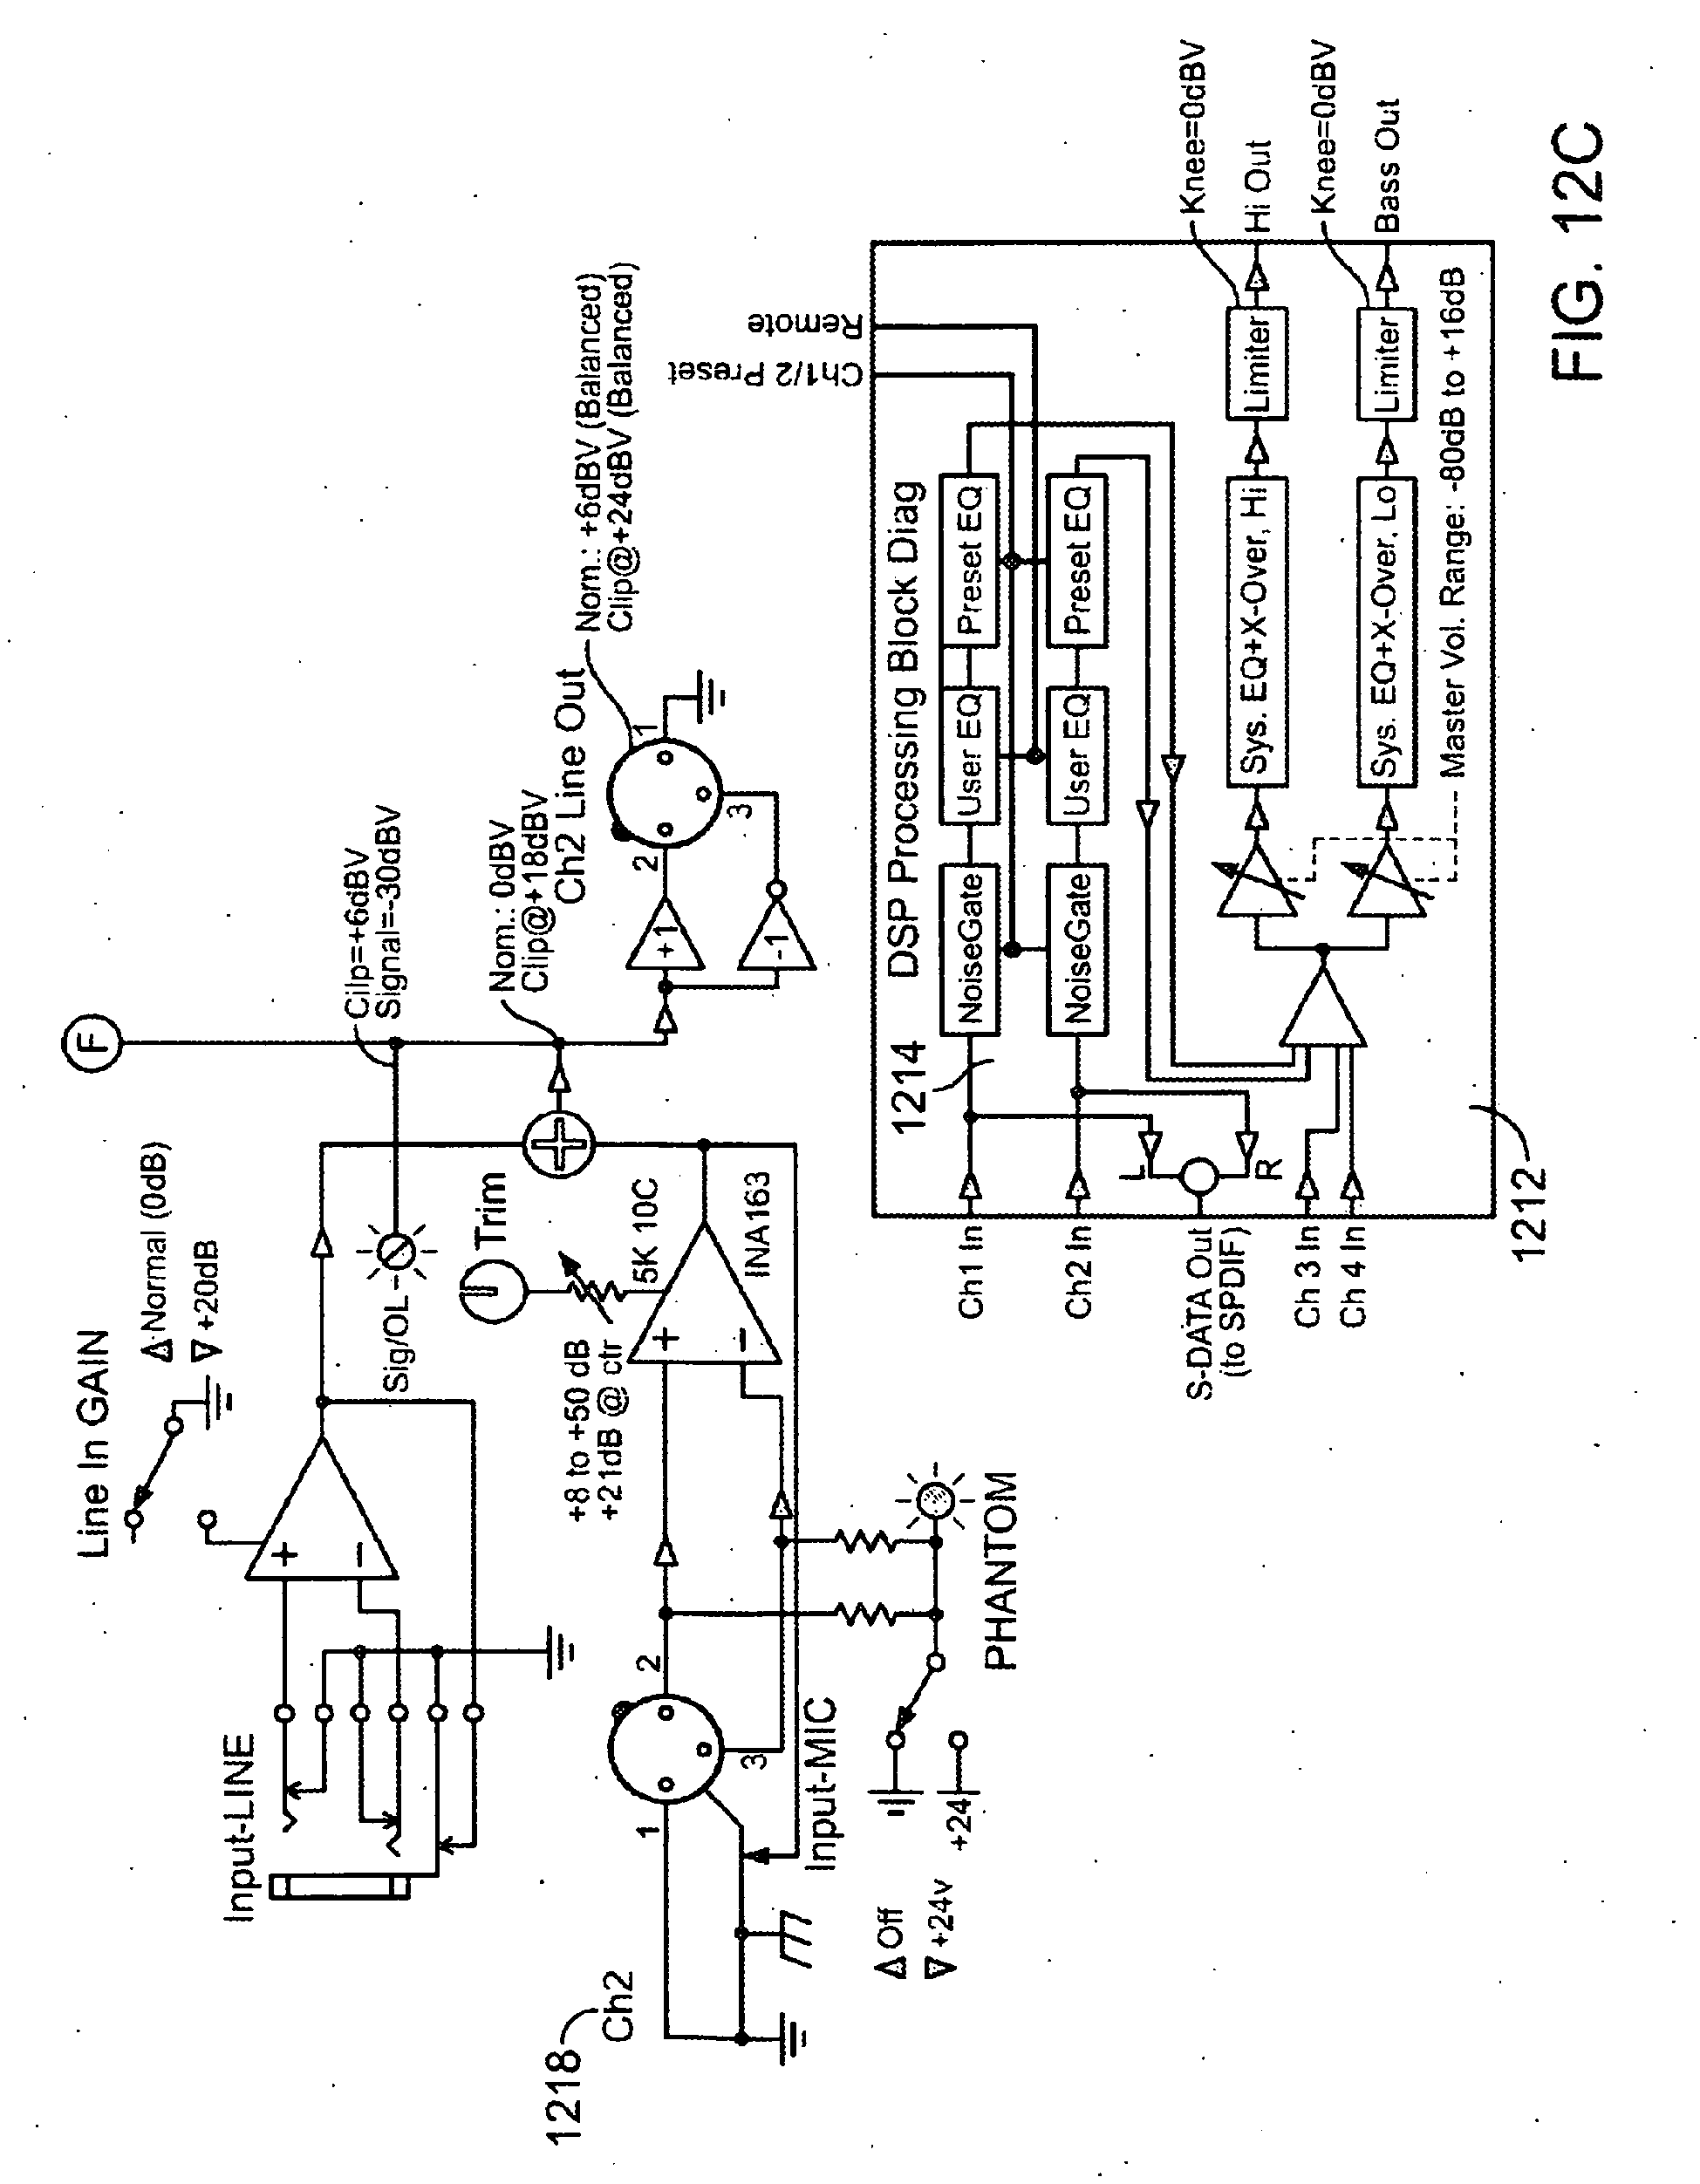 tactile on switch diagram tactile get free image about wiring diagram